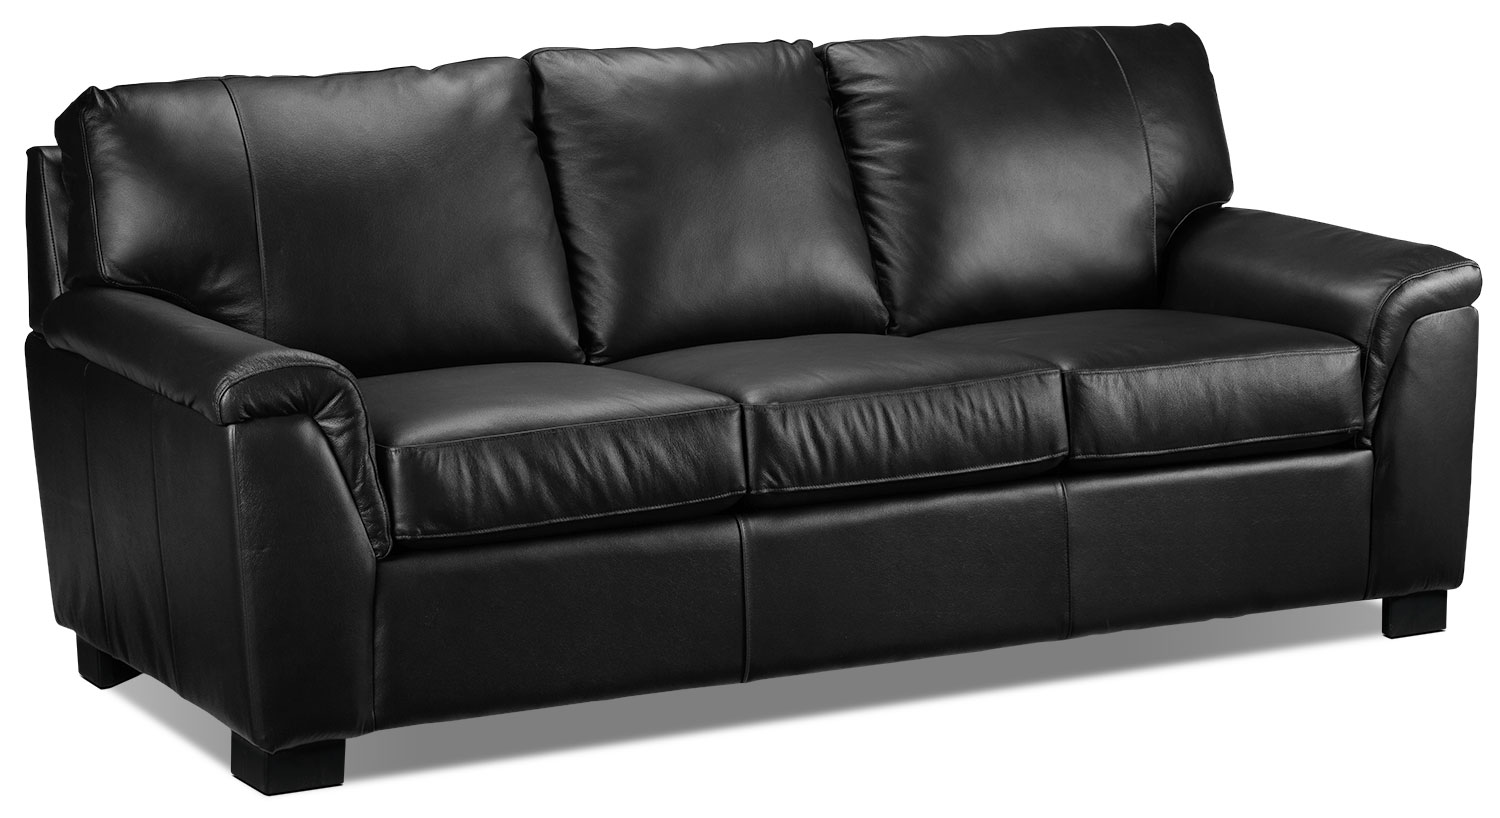 Living Room Furniture - Reynolds Sofa - Black